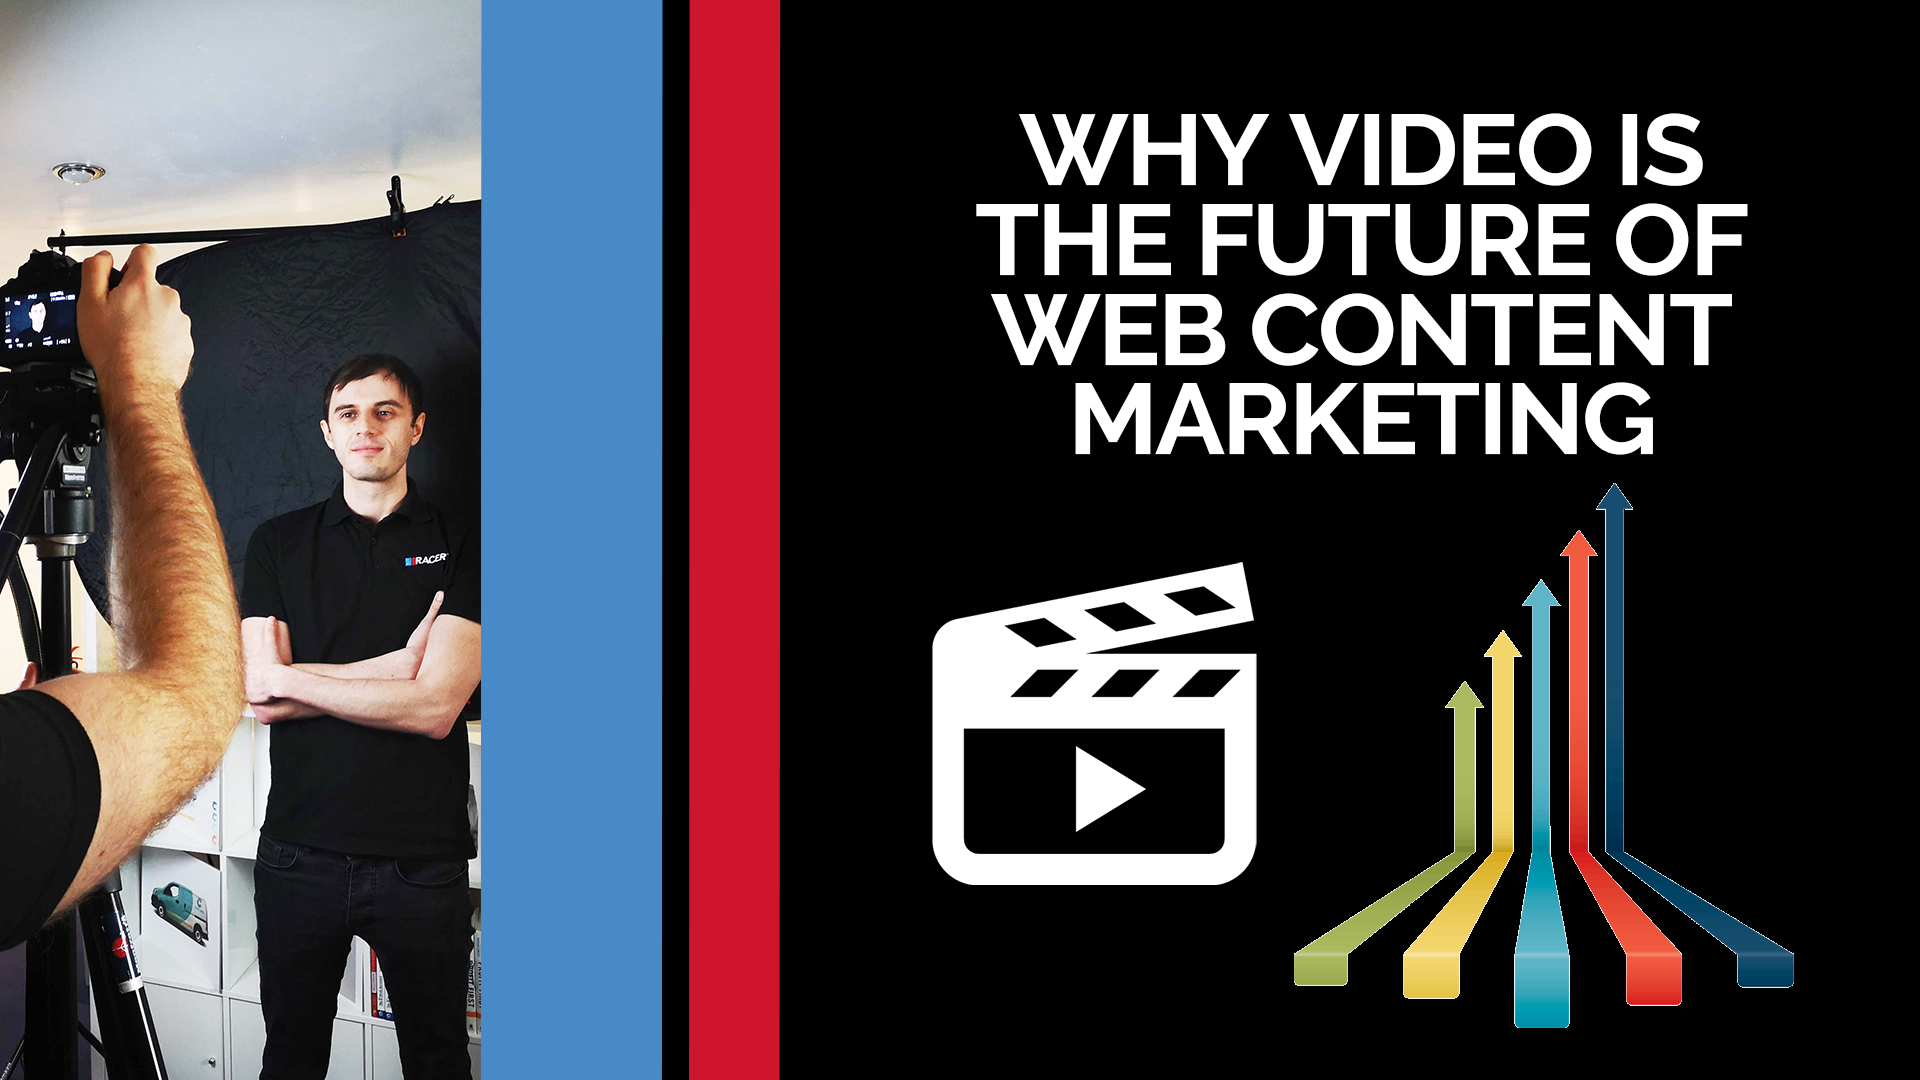 Why video is the future for web content marketing